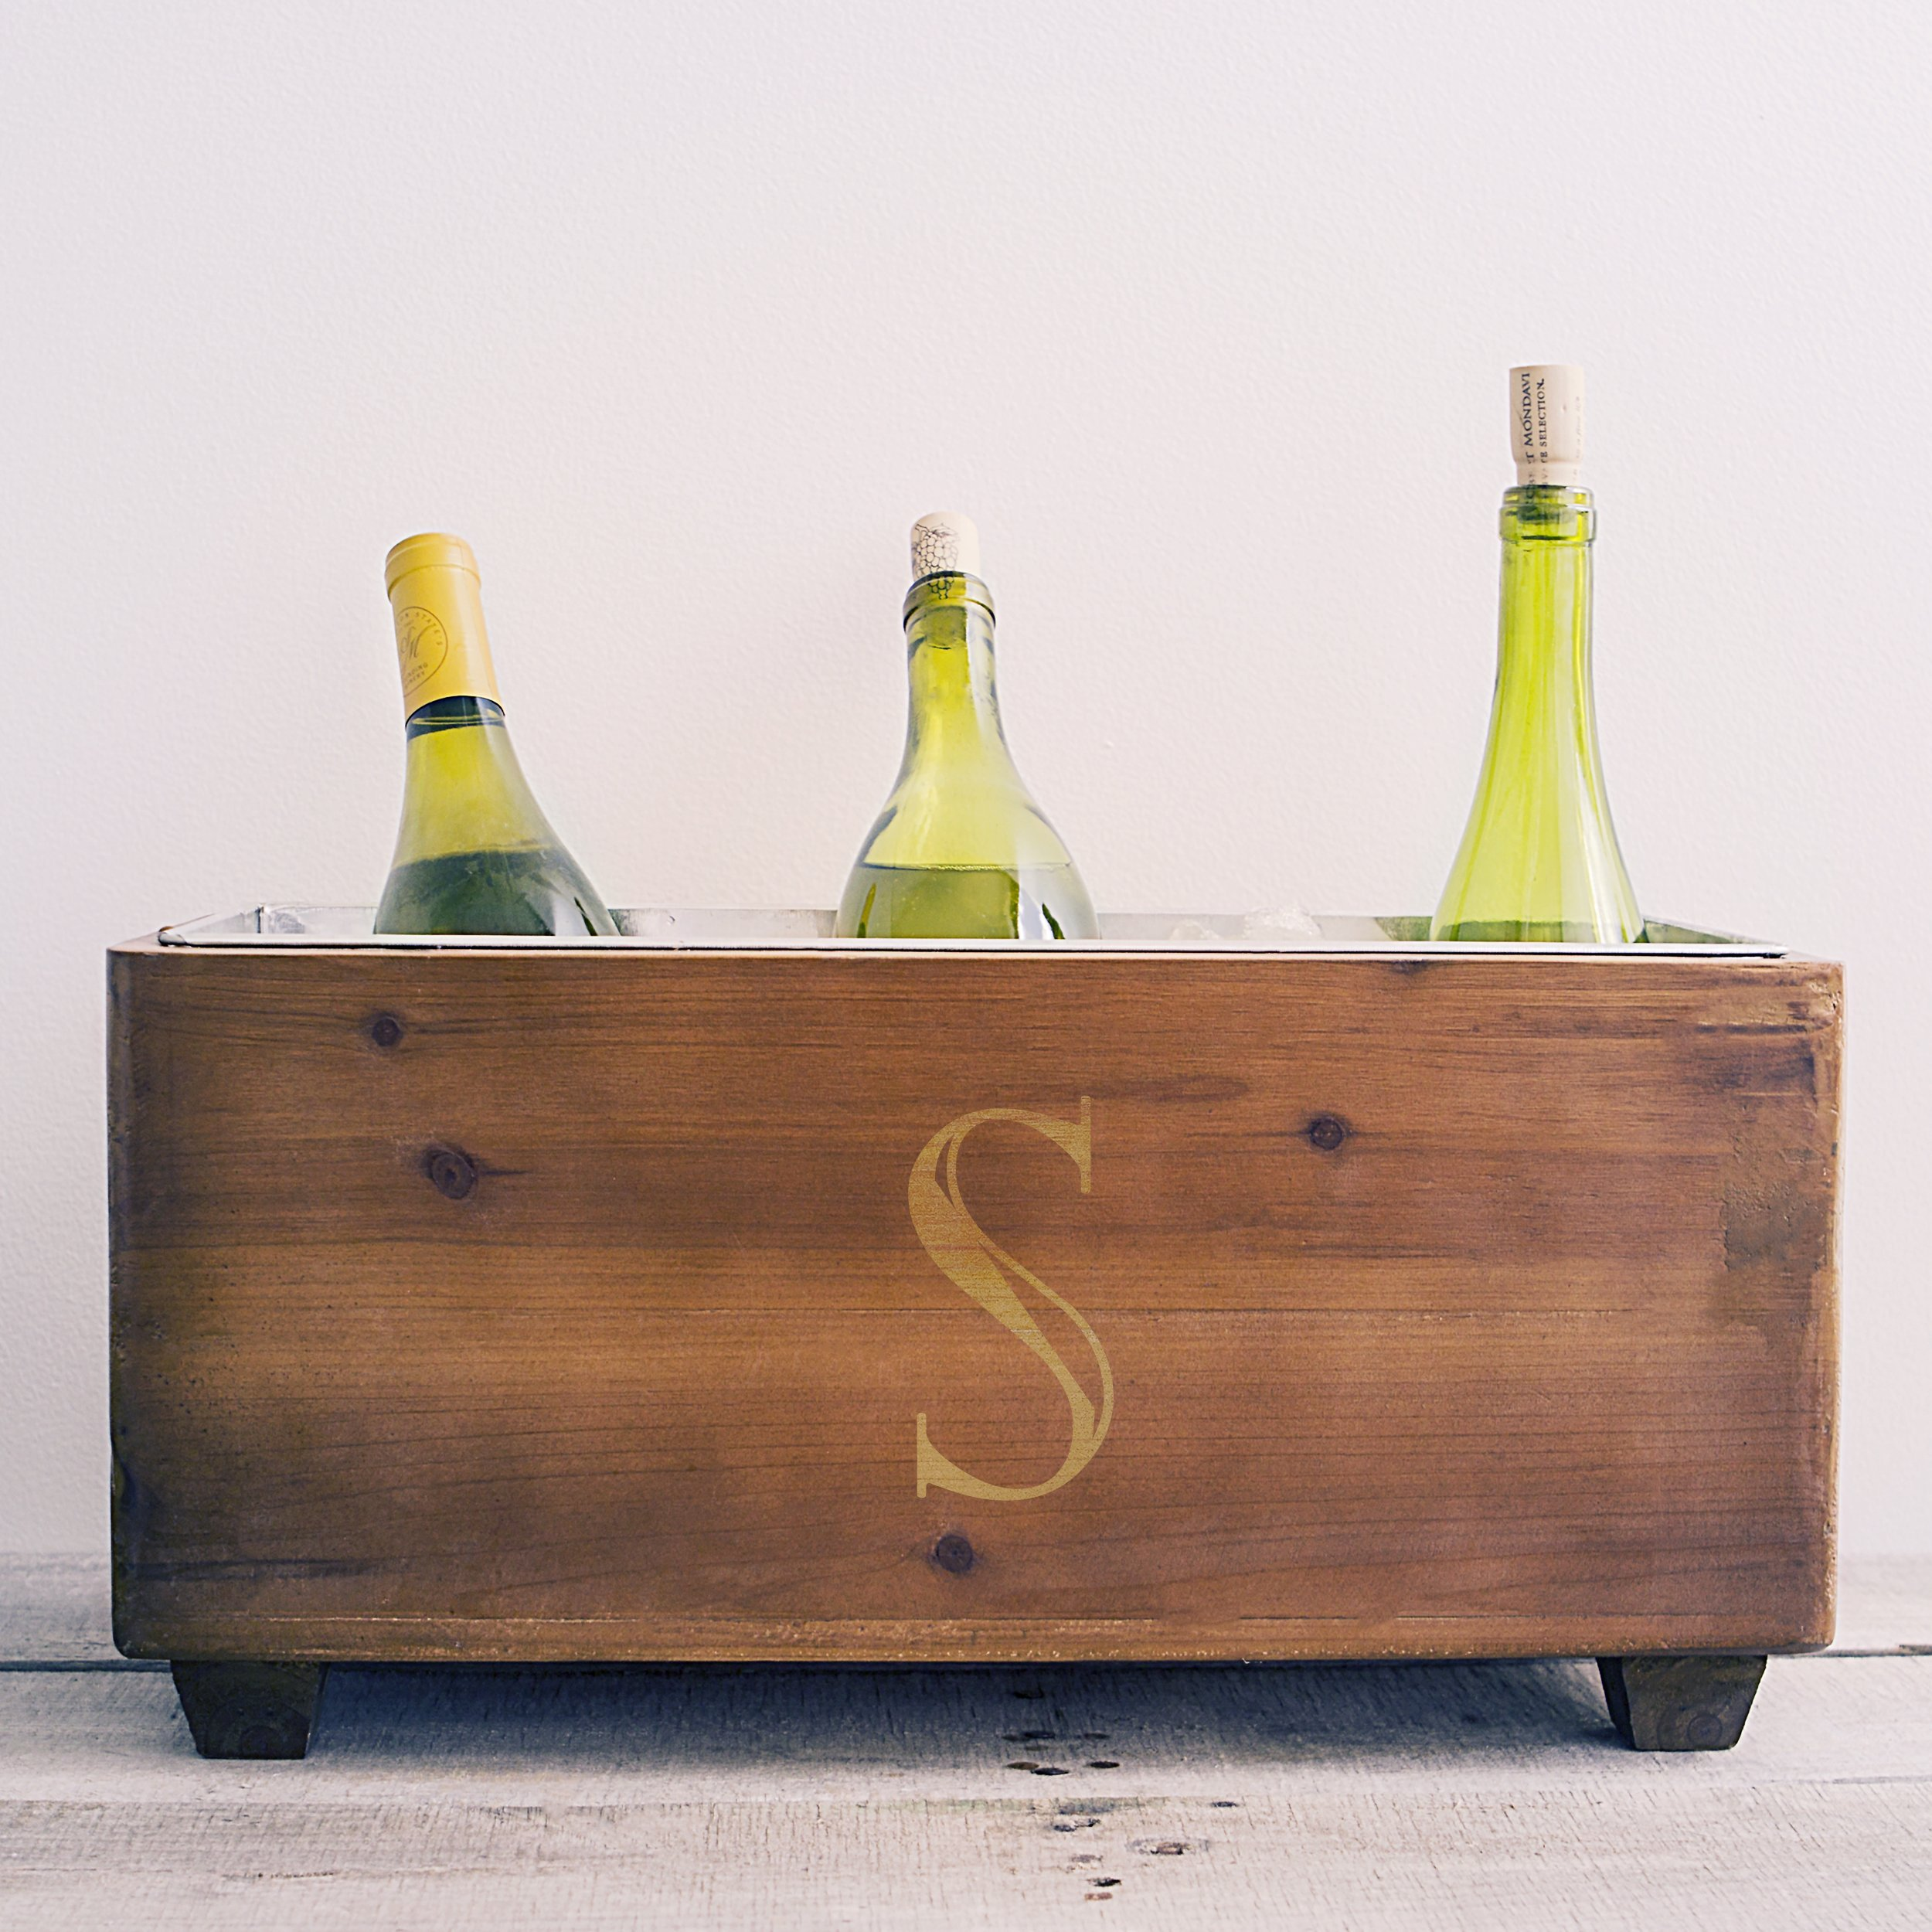 Cathy's Concepts Personalized Wooden Wine Trough, Letter S by Cathy's Concepts (Image #3)